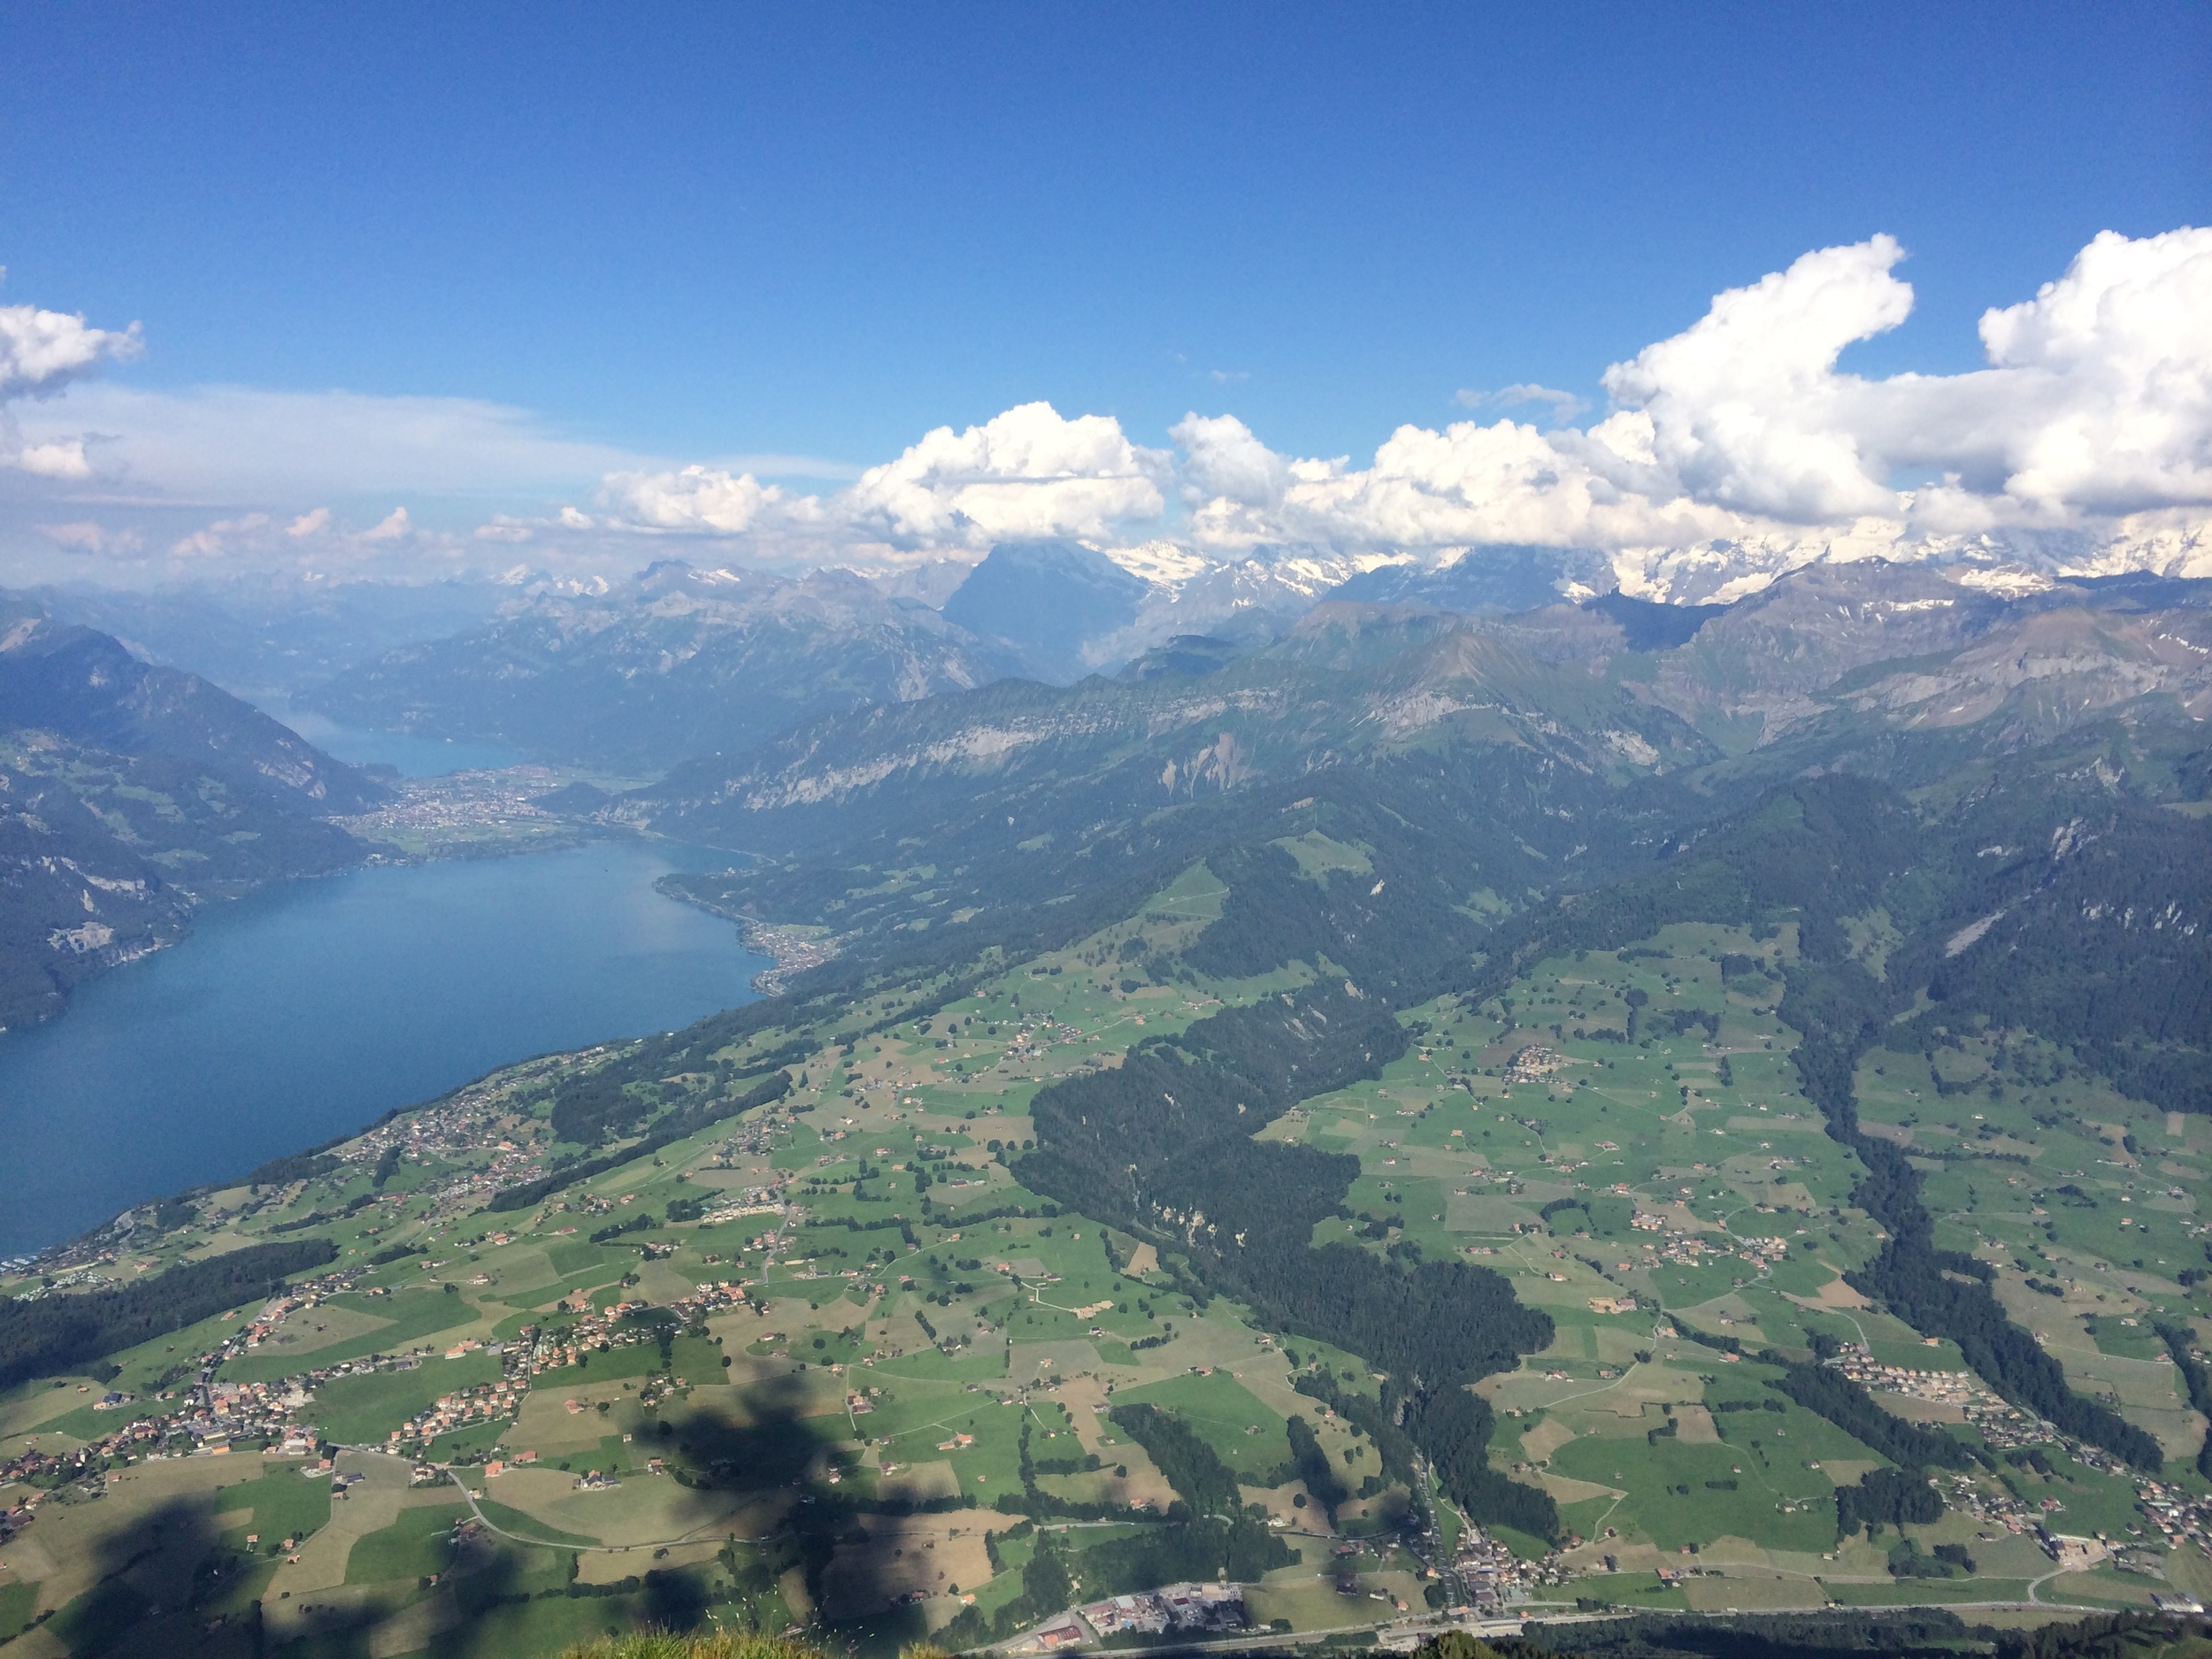 View from the top of Niesen Mountain. interlaken is on the left.